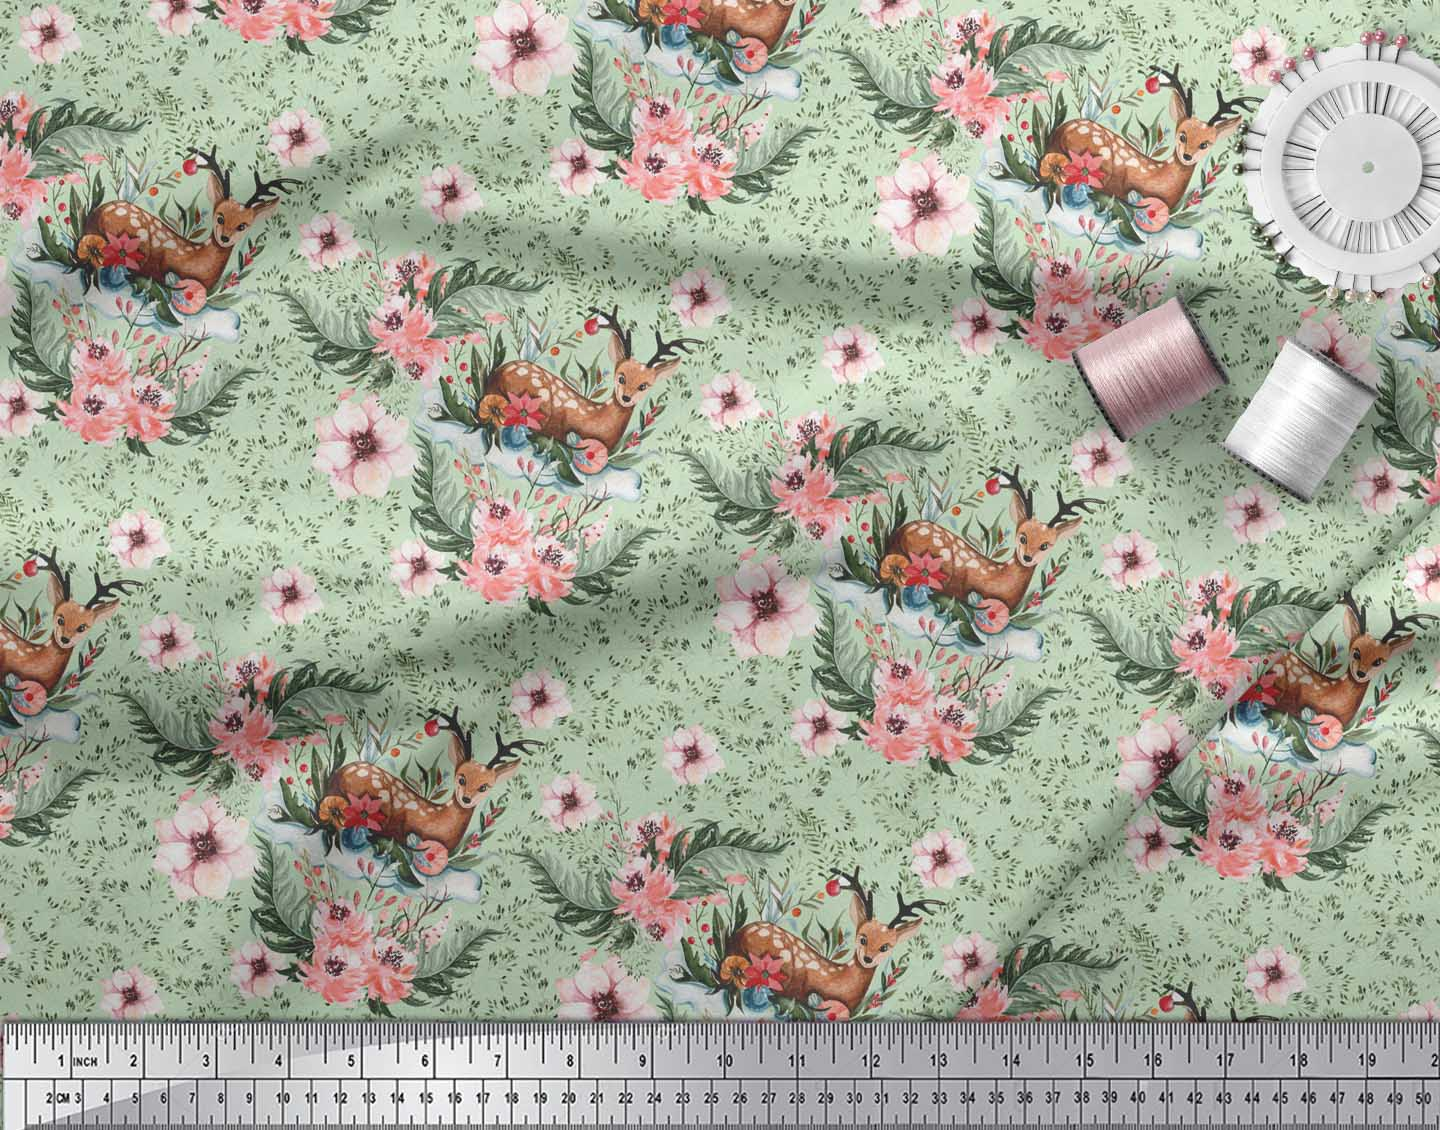 Soimoi-Green-Cotton-Poplin-Fabric-Deer-amp-Magnolia-Floral-Fabric-DzE thumbnail 4